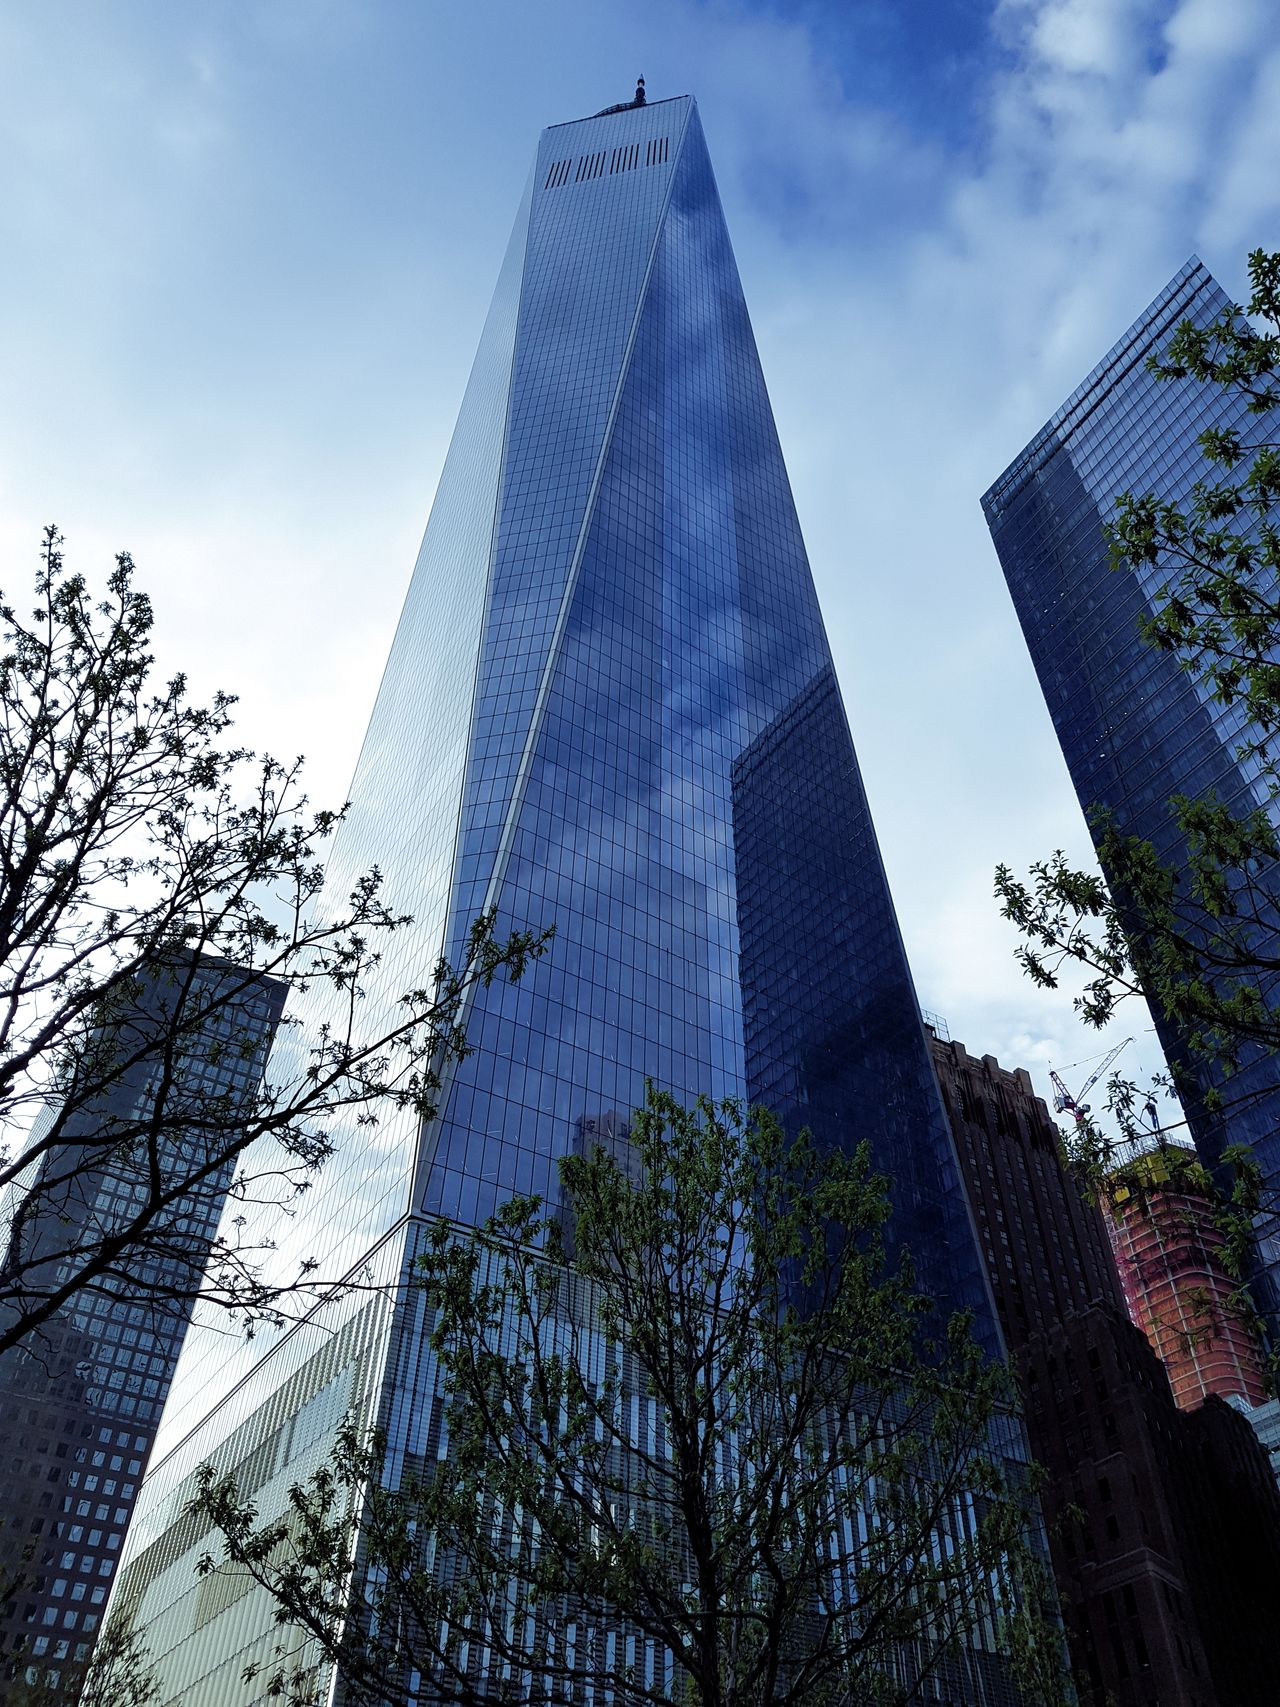 Pyramid Travel Destinations Triangle Shape Low Angle View Architecture Tourism Modern Travel Sky Built Structure Skyscraper No People Outdoors Day Close-up Business Finance And Industry 9/11 Symbol 9/11 Tribute 9/11 New York, New York New York ❤ Reflection Clouds And Sky Cloud - Sky